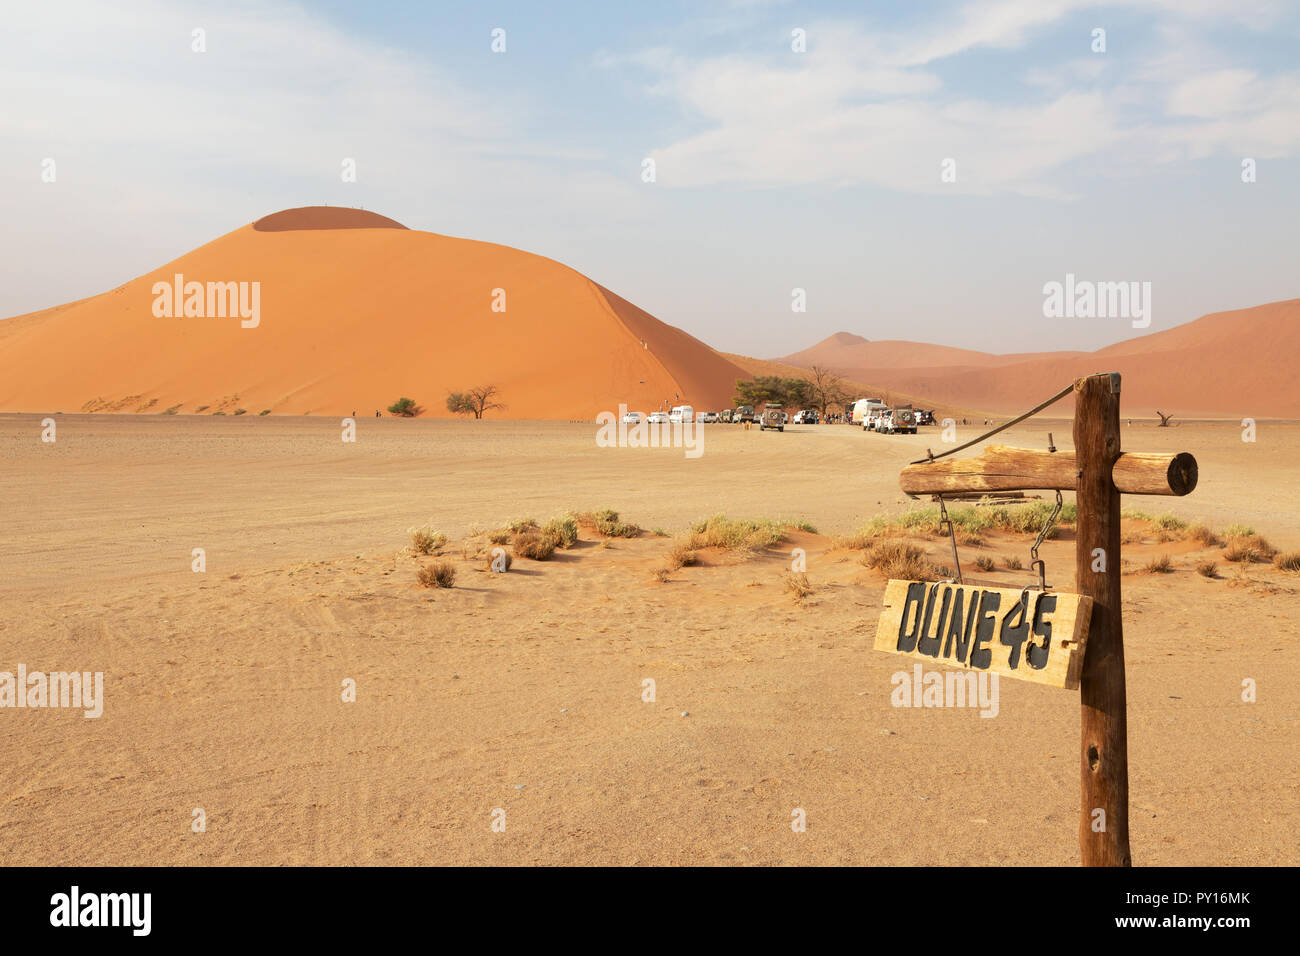 Dune 45 a well known sand dune in the Namib Desert, Sossusvlei, Namibia Africa Stock Photo